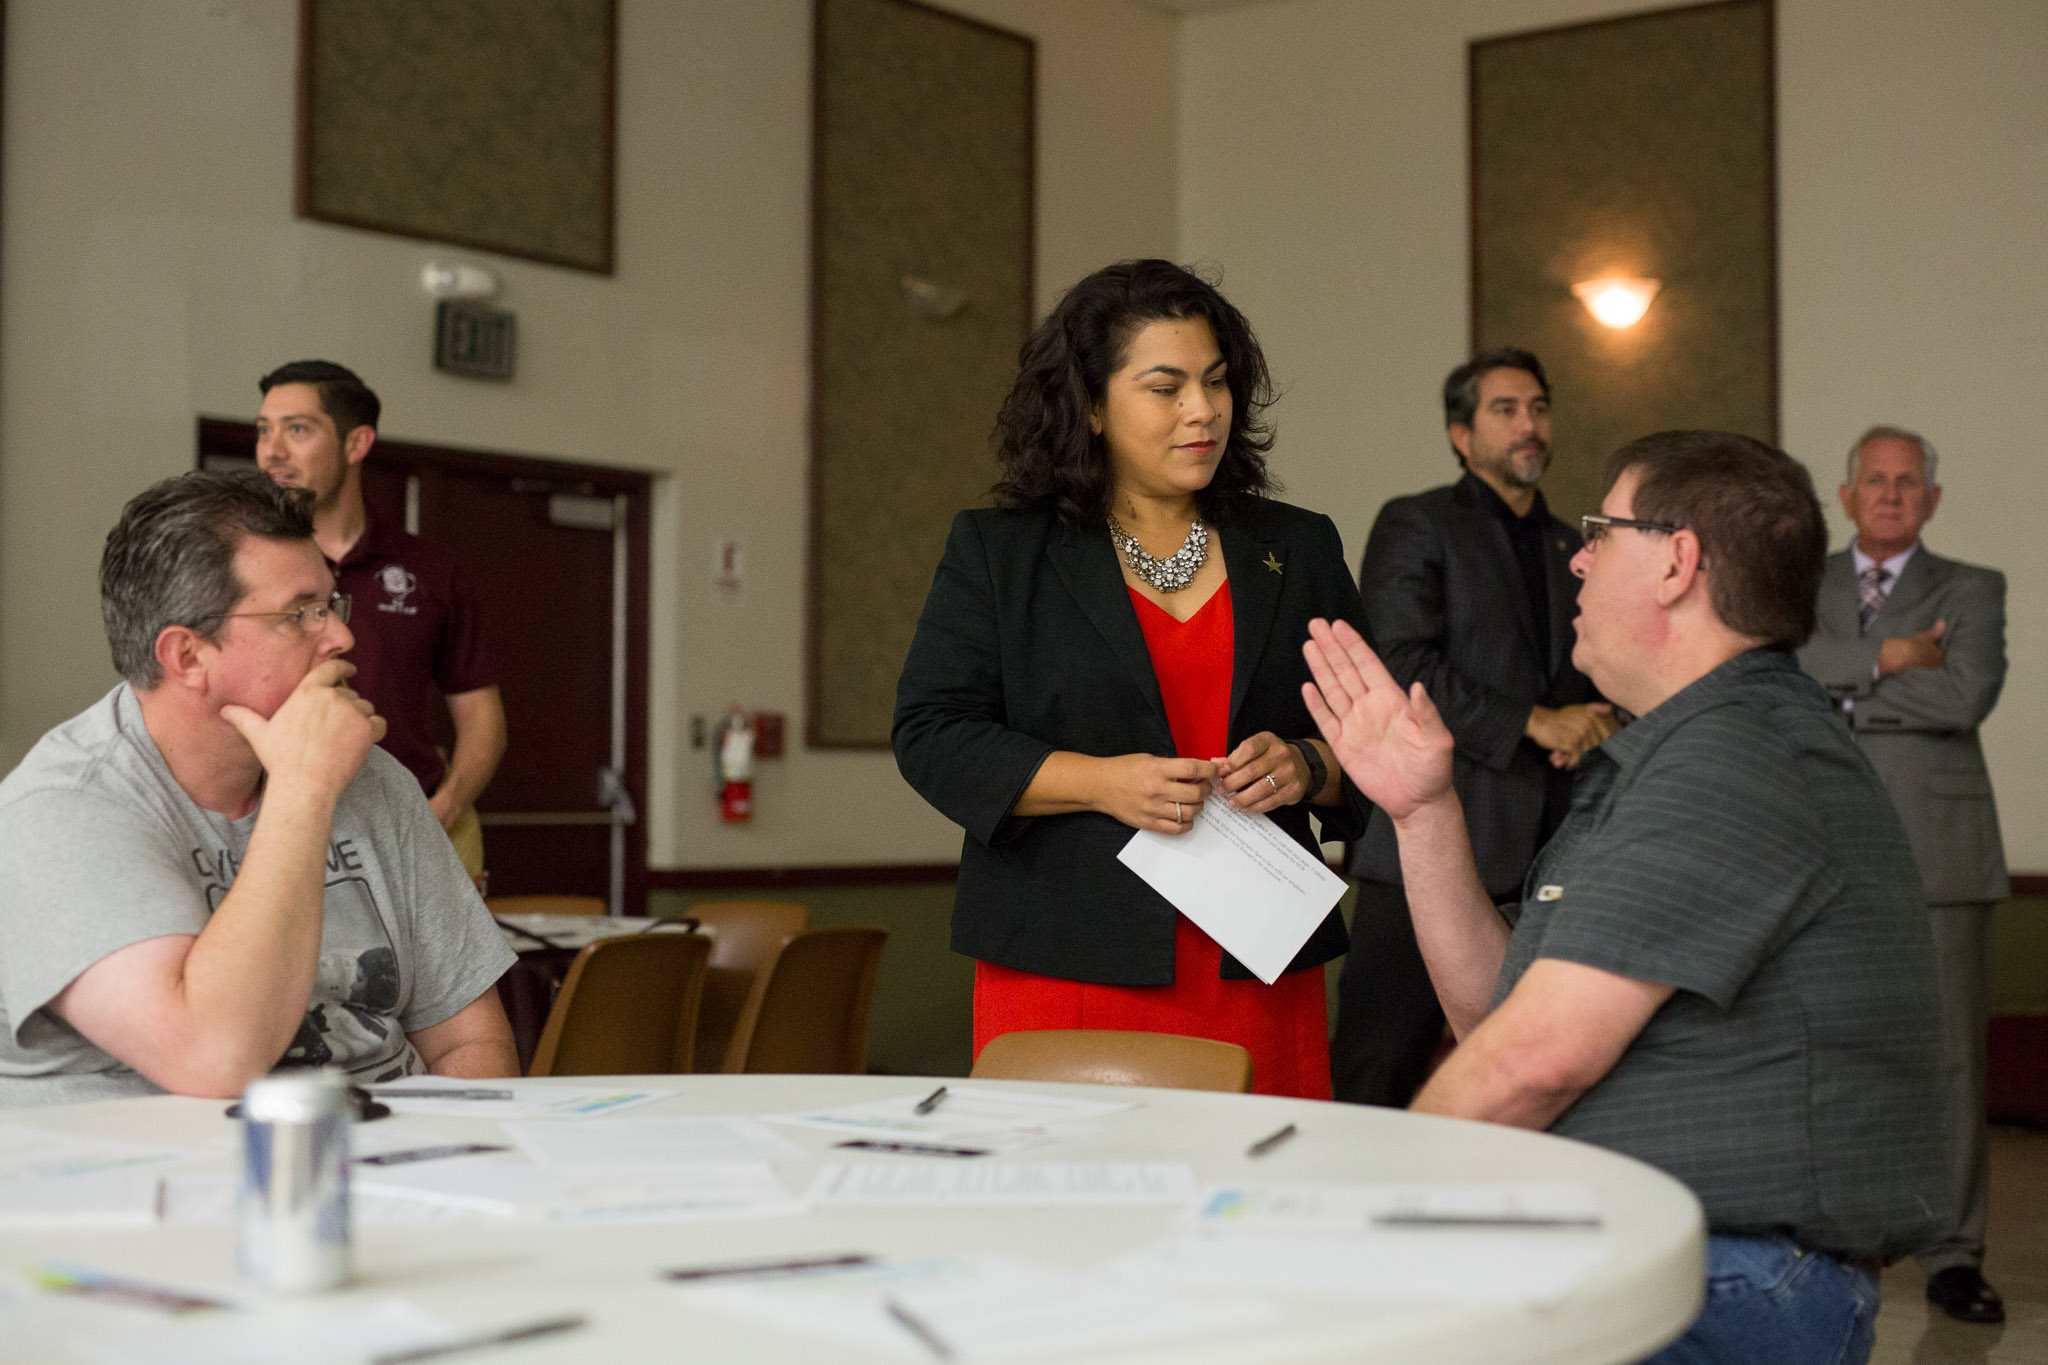 Councilwoman Rebecca Viagran (D3) speaks with community members before the event. Photo by Scott Ball.